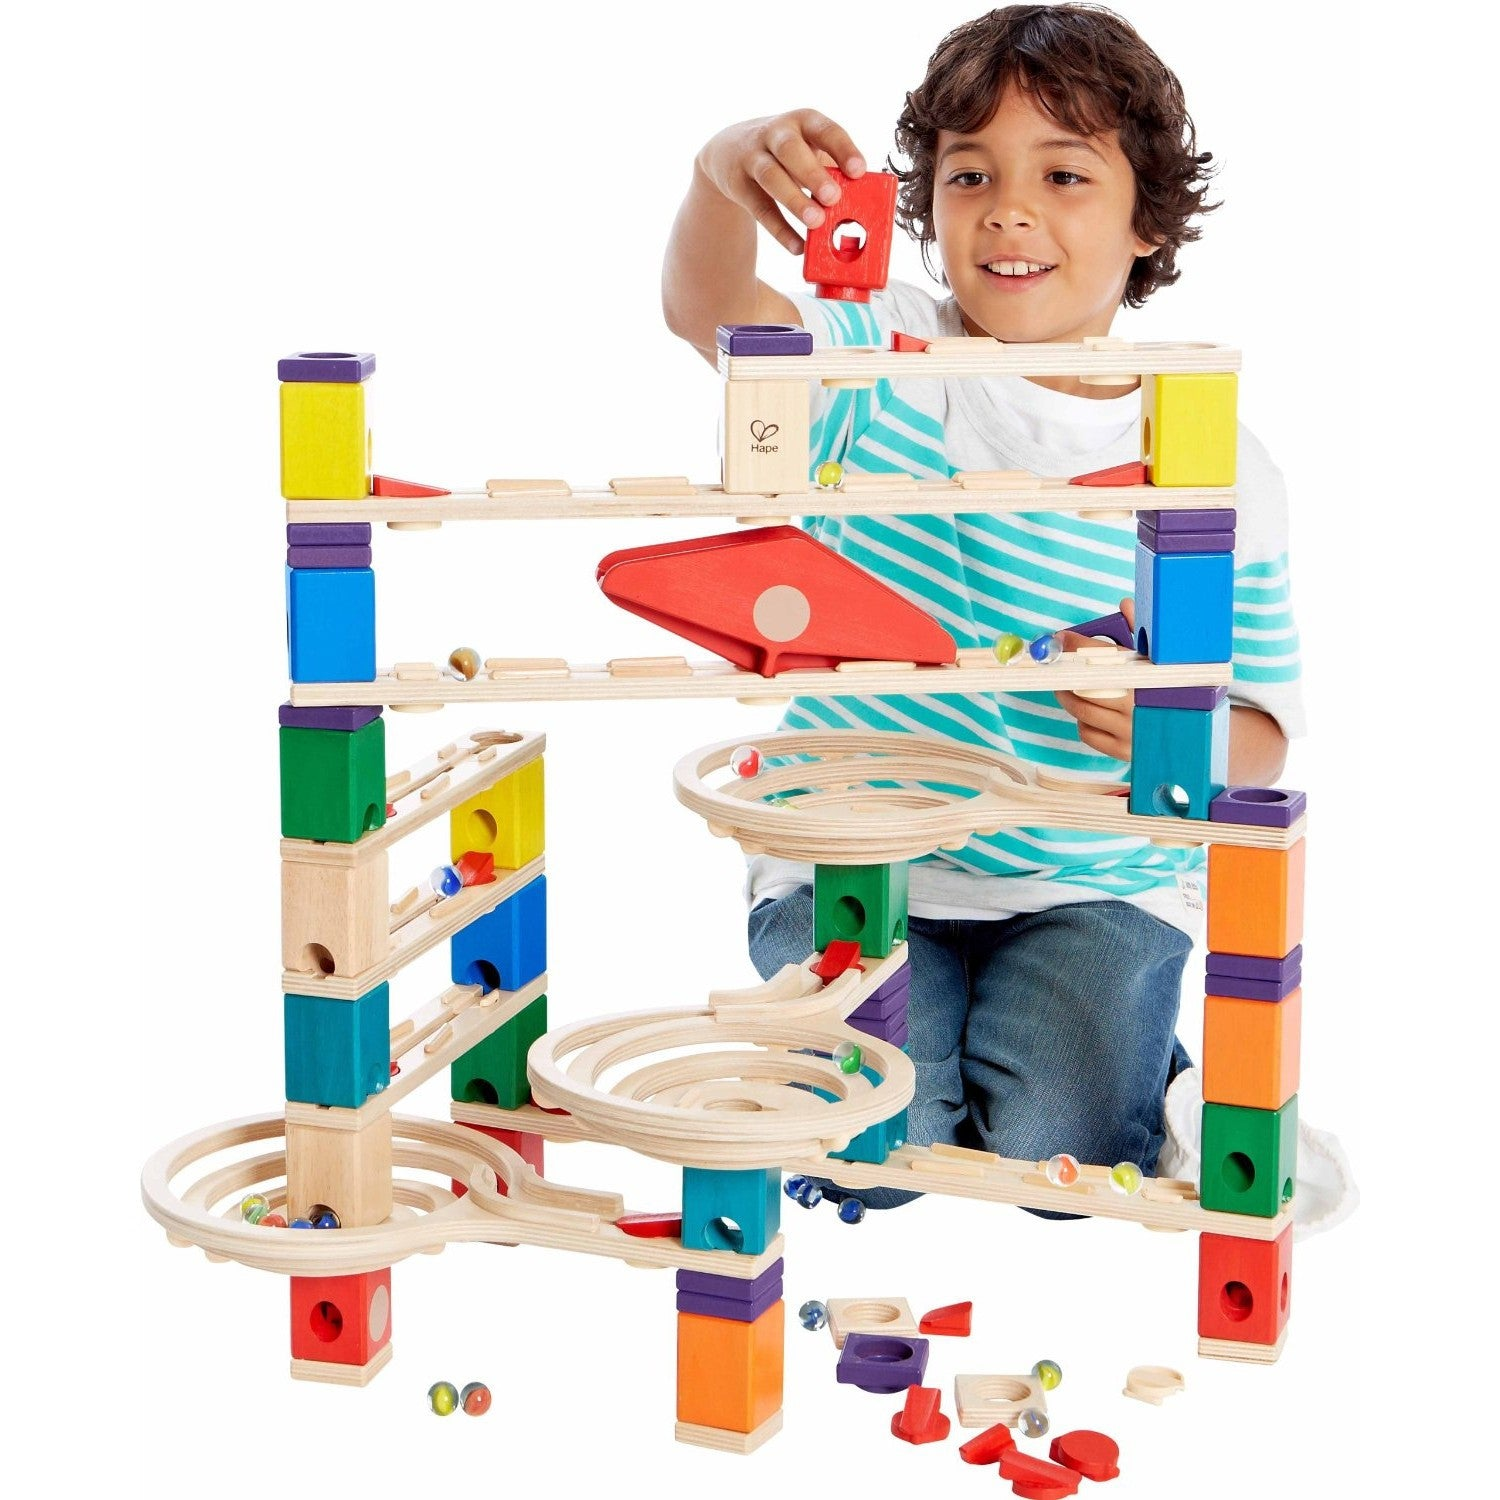 Hape Quadrilla Vertigo Marble Run Hape Activity Toys at Little Earth Nest Eco Shop